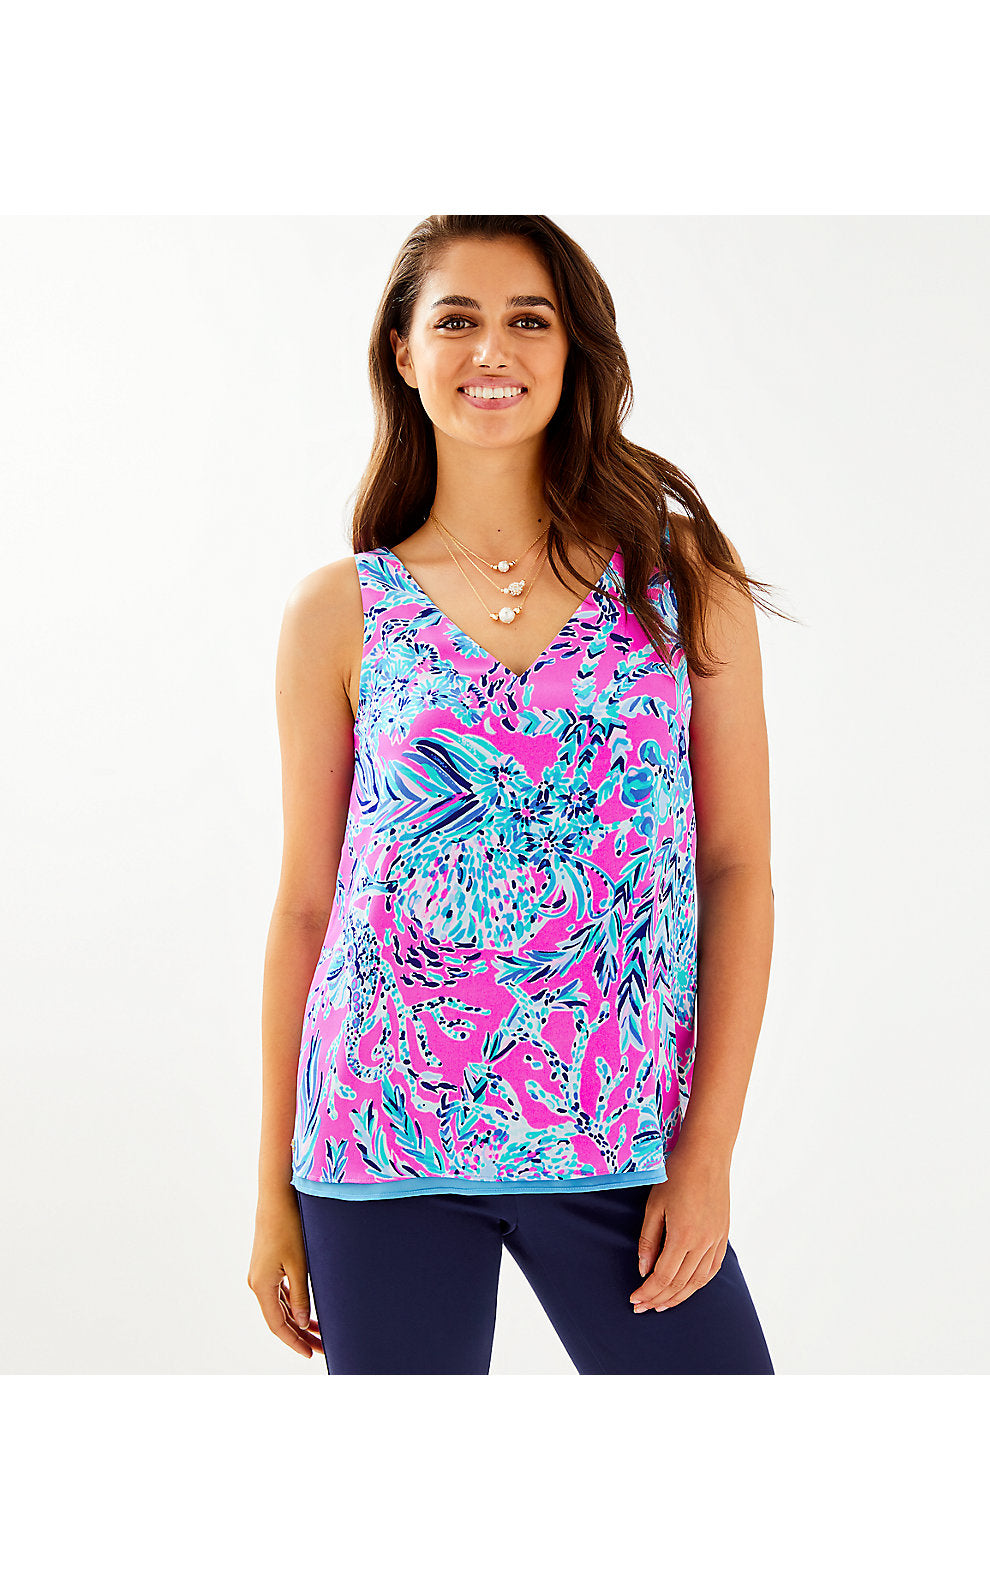 FLORIN SLEEVELESS V-NECK MANDEVILLA PINK     NEW KIDS ON THE DOCK